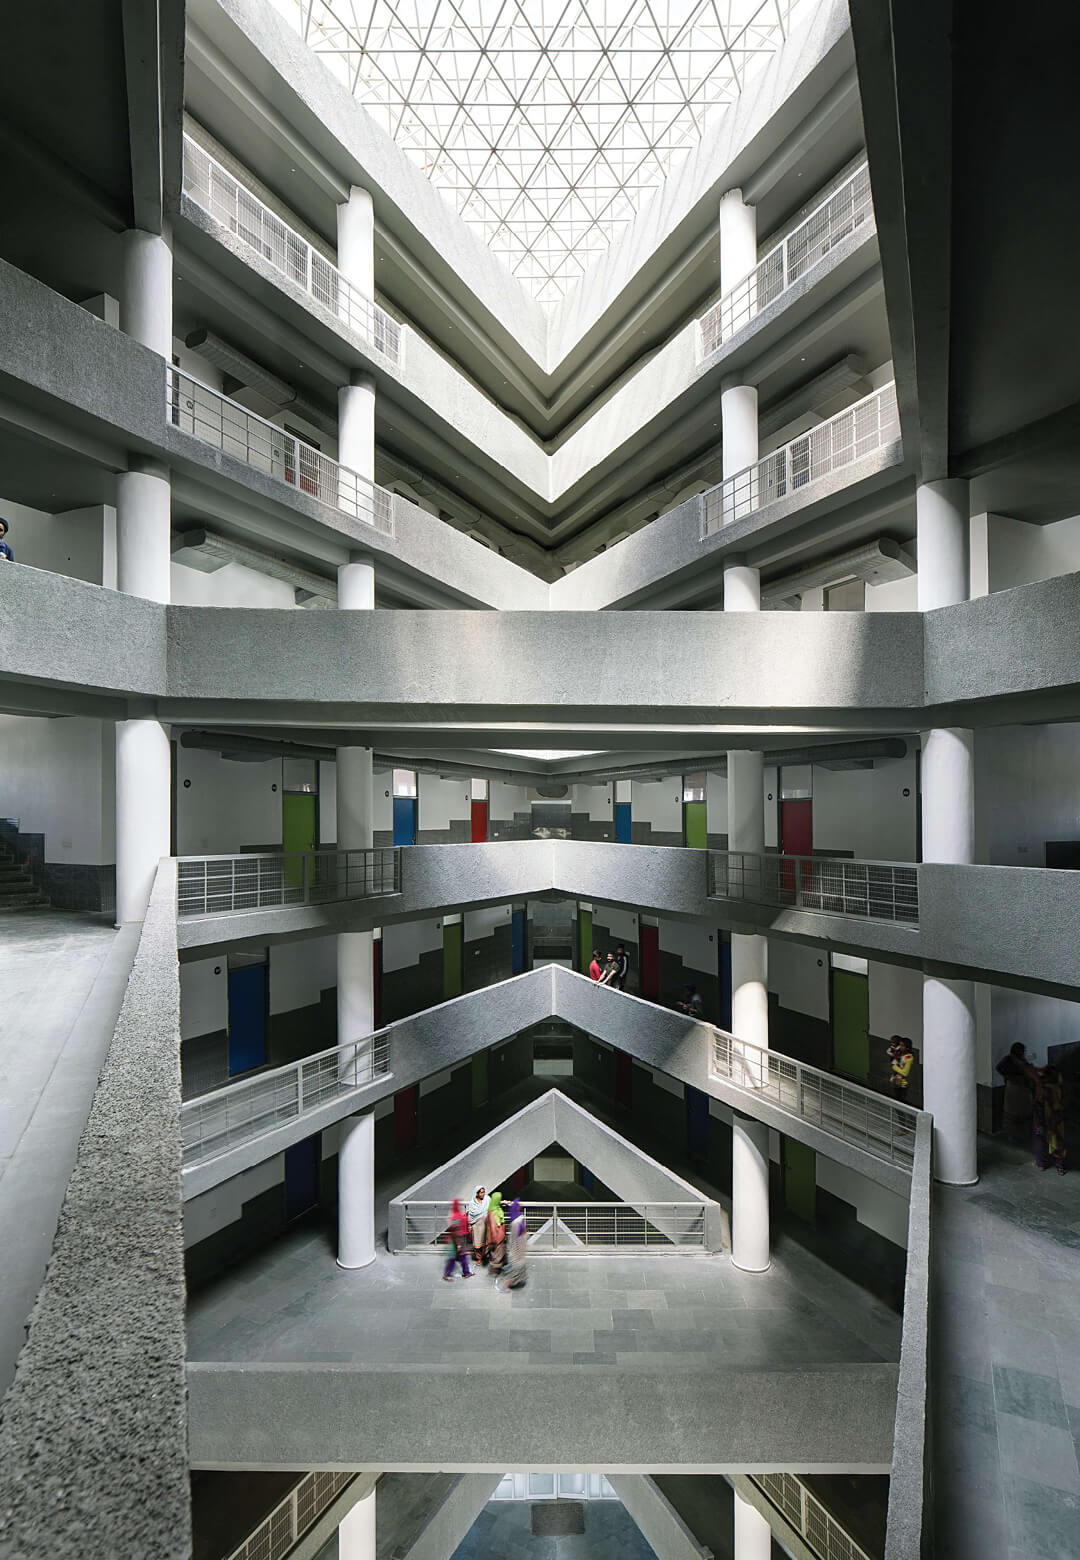 Student Hostel for Chandigarh Group of Colleges | Charged Voids | Chandigarh, India | STIRworld